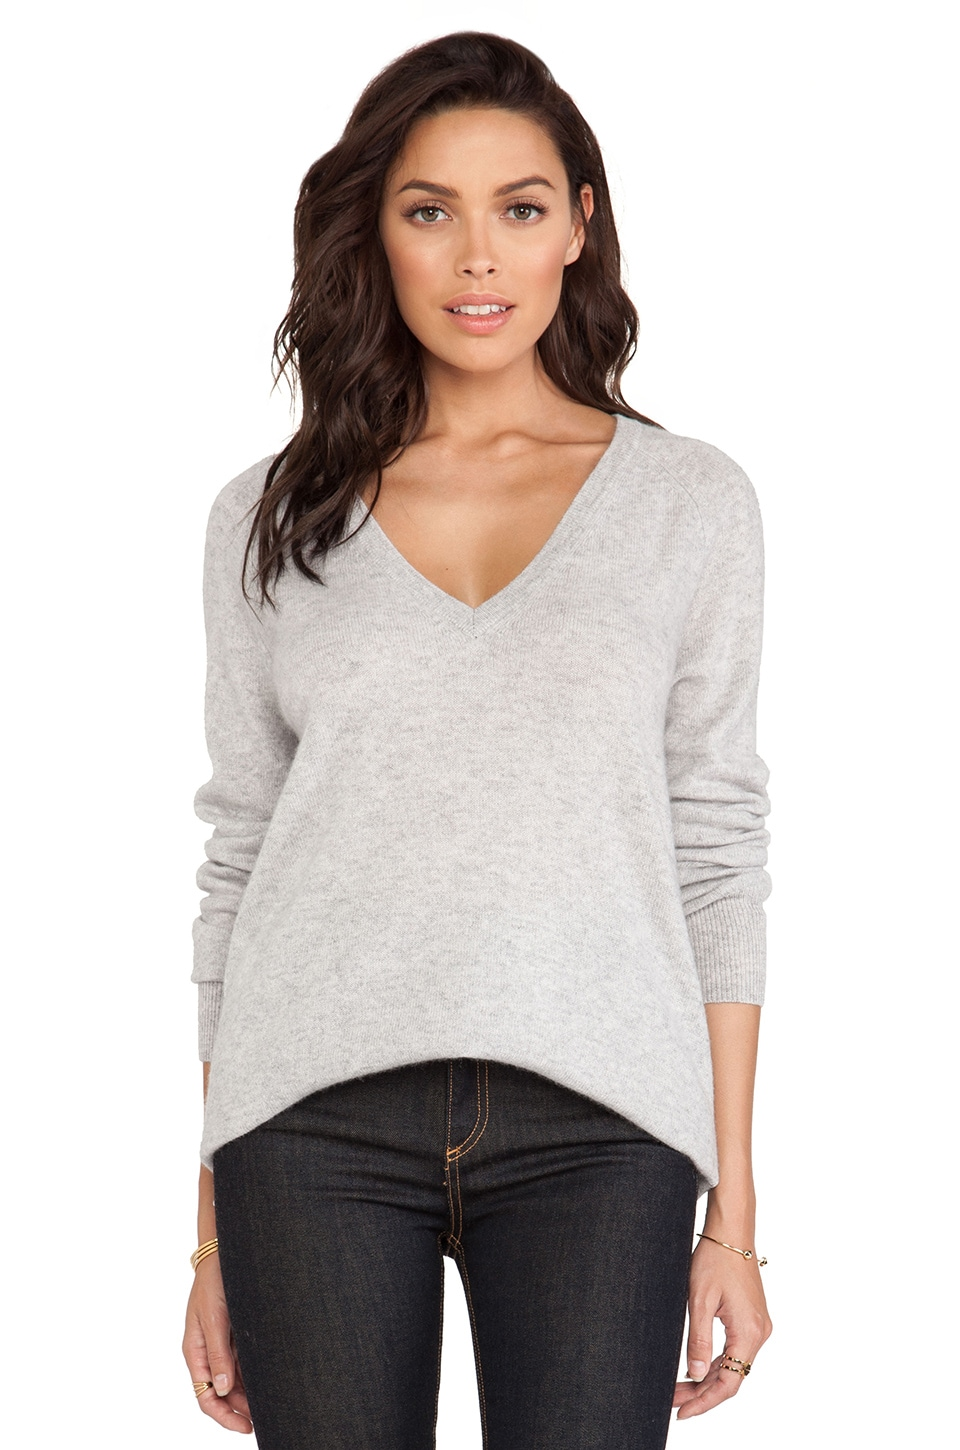 Equipment Asher V Neck Sweater in Light Heather Grey